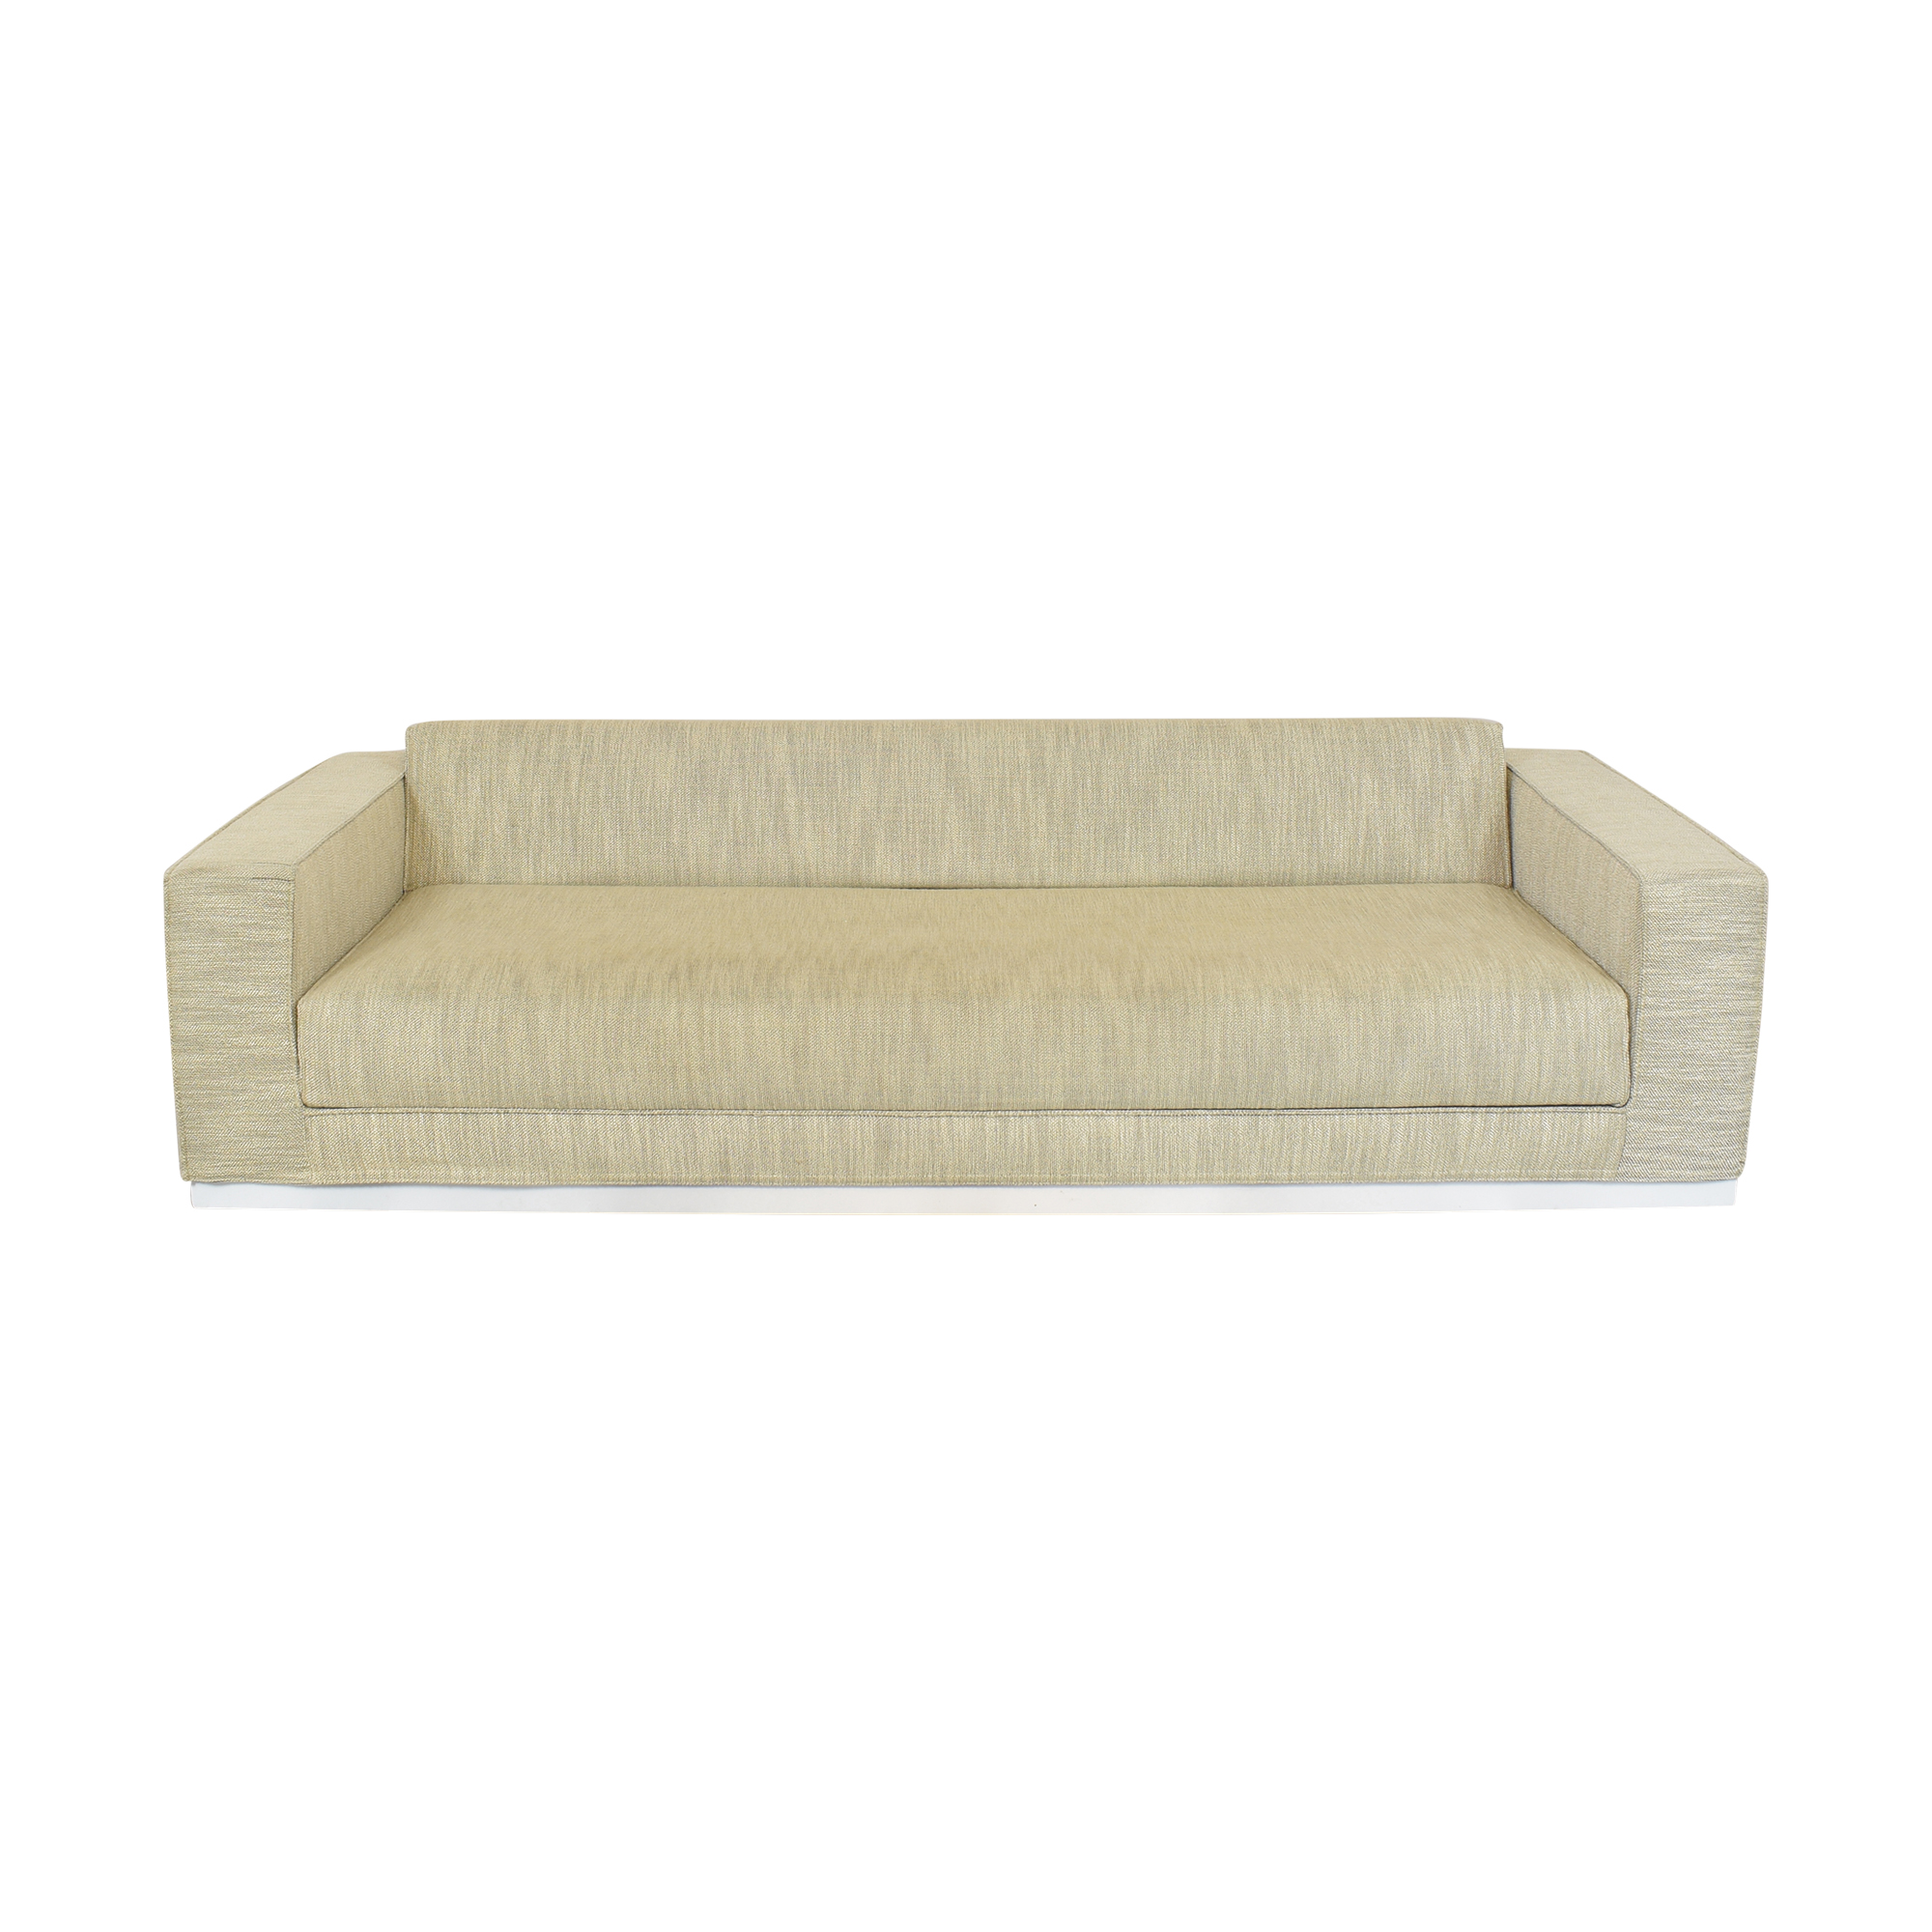 Design Within Reach Design Within Reach Havana Sleeper Sofa ma